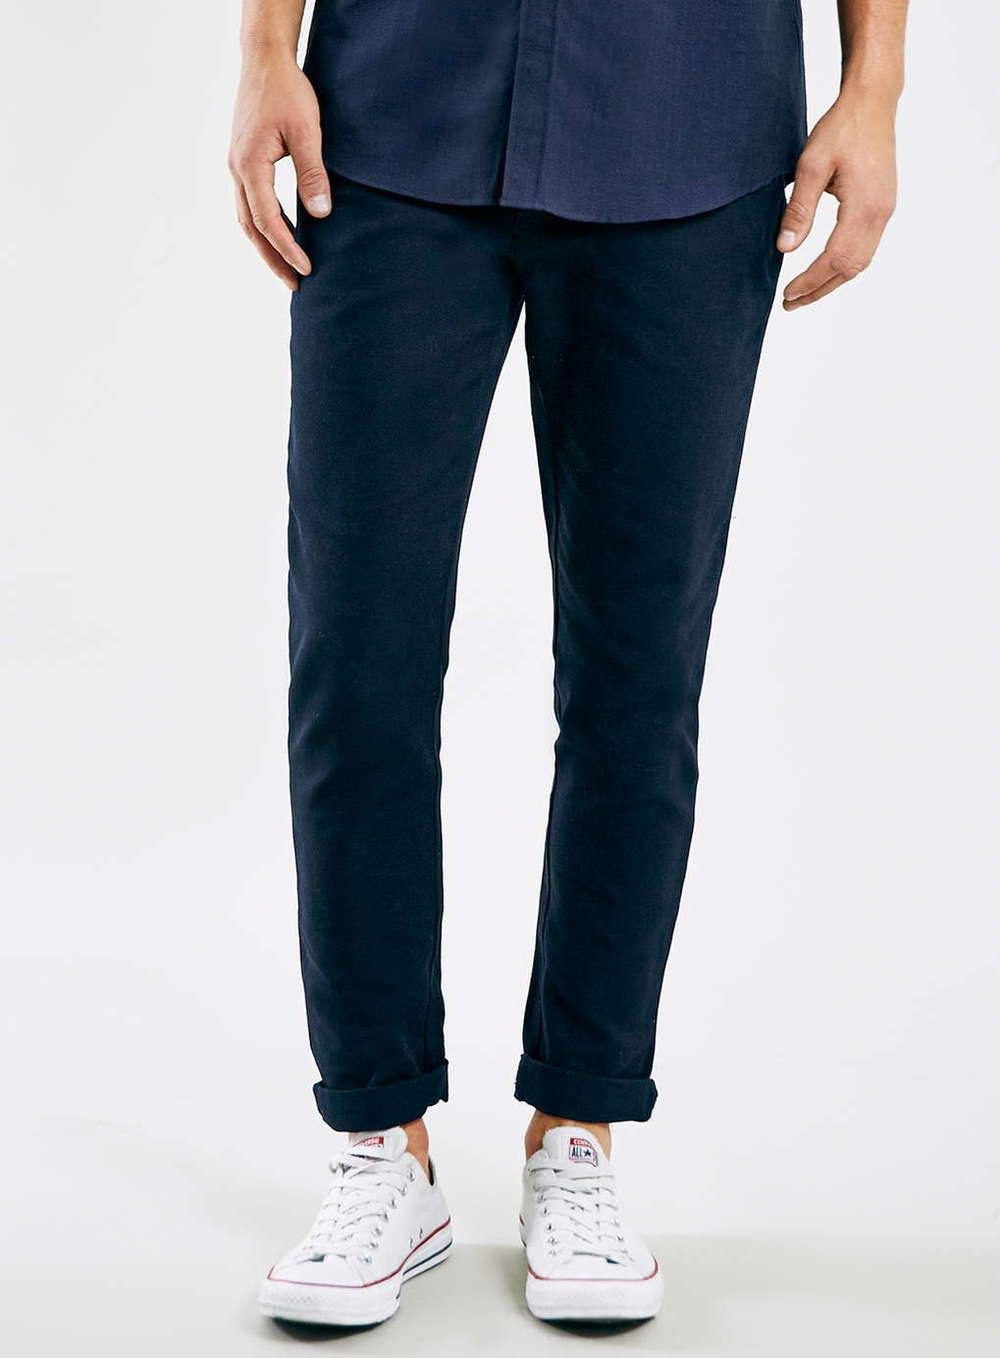 Cuffed Chinos without Socks Creates the Perfect Summer Look